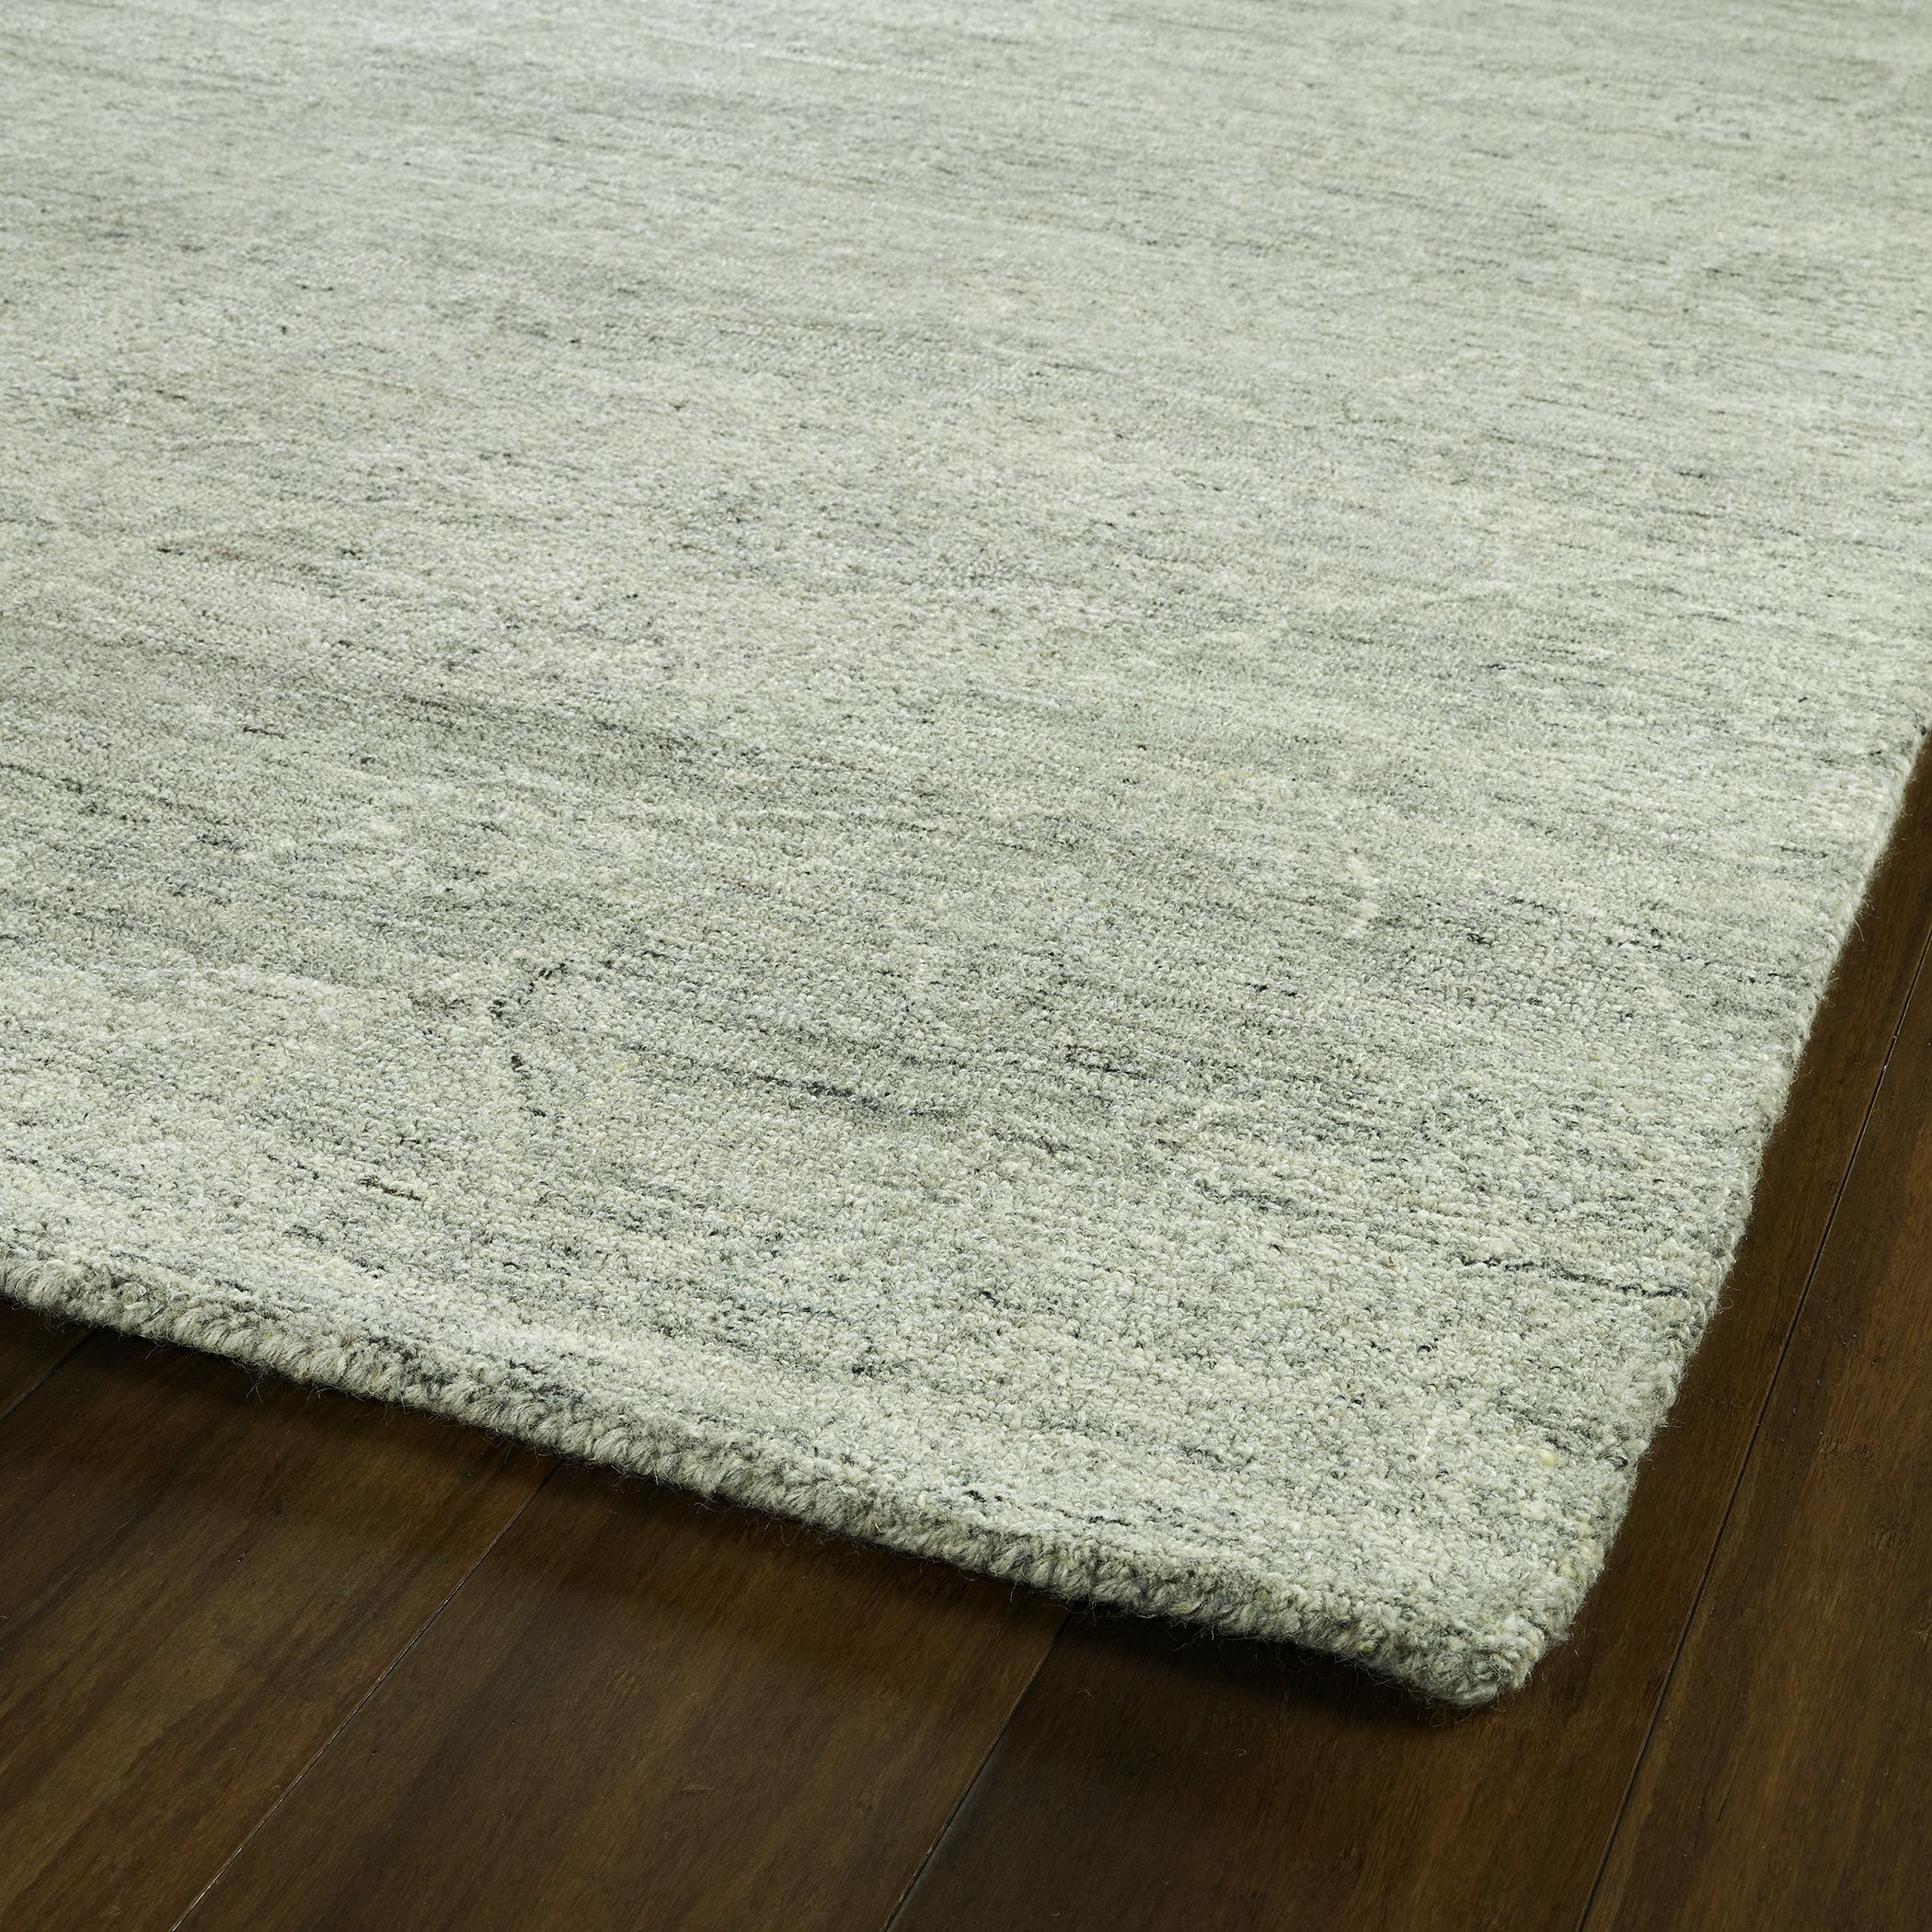 Pdn01 Color Silver Size 2 6 X 8 Area Rugs Rugs Colorful